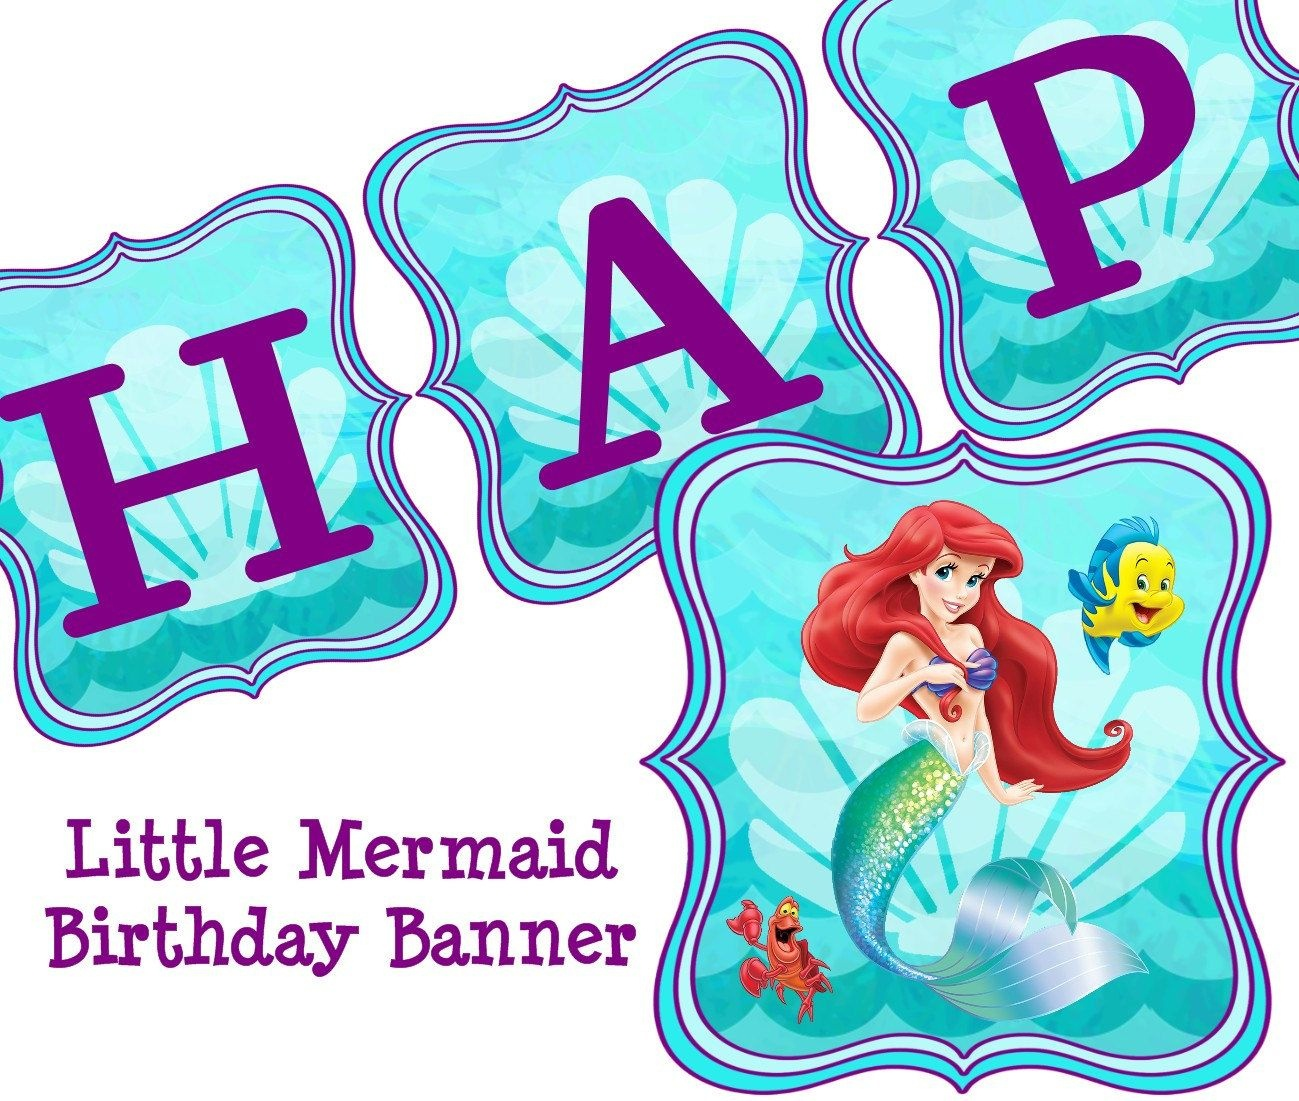 Little Mermaid Free Party Printables - Buscar Con Google | Lil - Free Printable Little Mermaid Birthday Banner